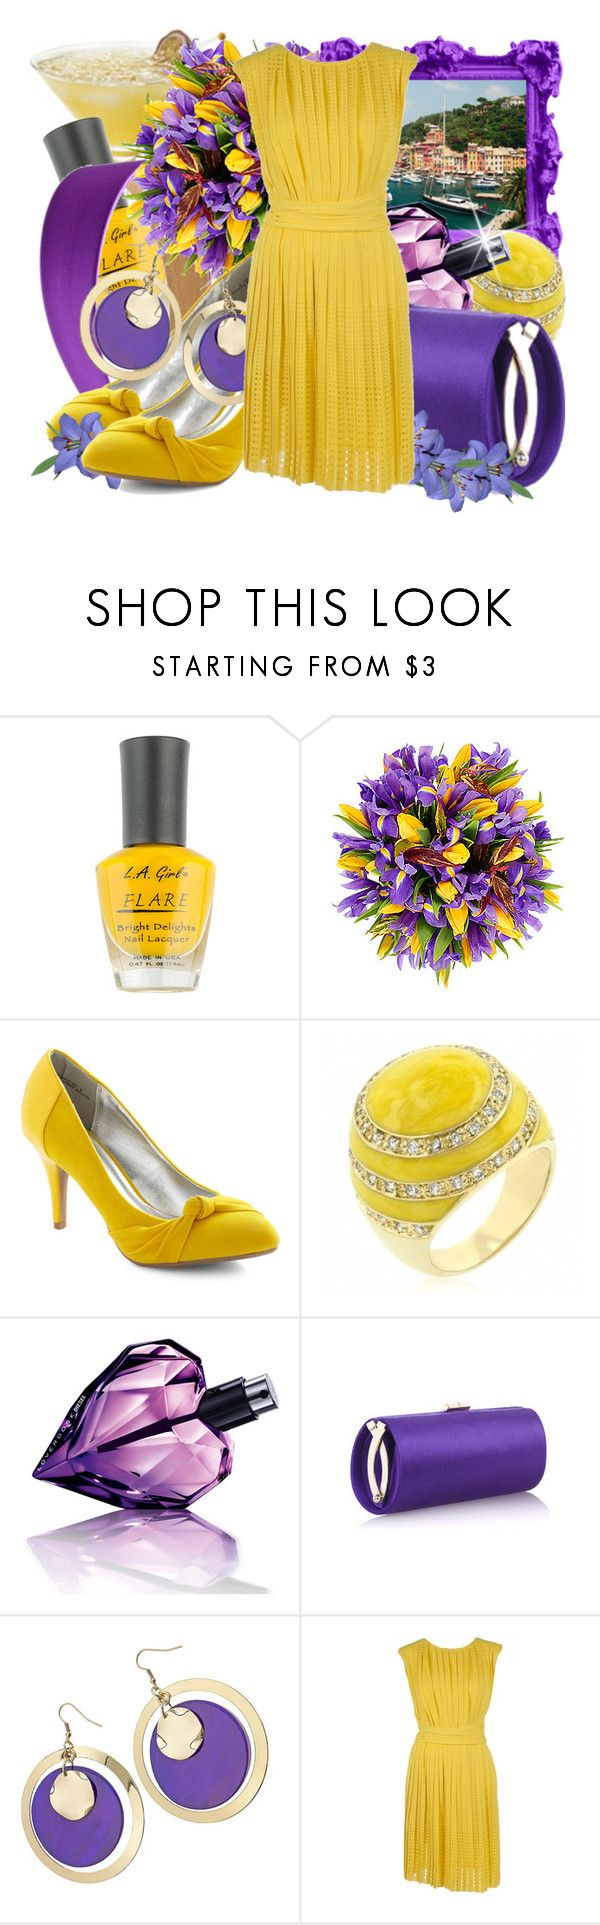 """Senza titolo #793"" by matelda ❤ liked on Polyvore featuring Roberto Cavalli, Forever 21, Nishe, Fantasy Jewelry Box, Diesel, Jimmy Choo, Miss Selfridge and Giambattista Valli"